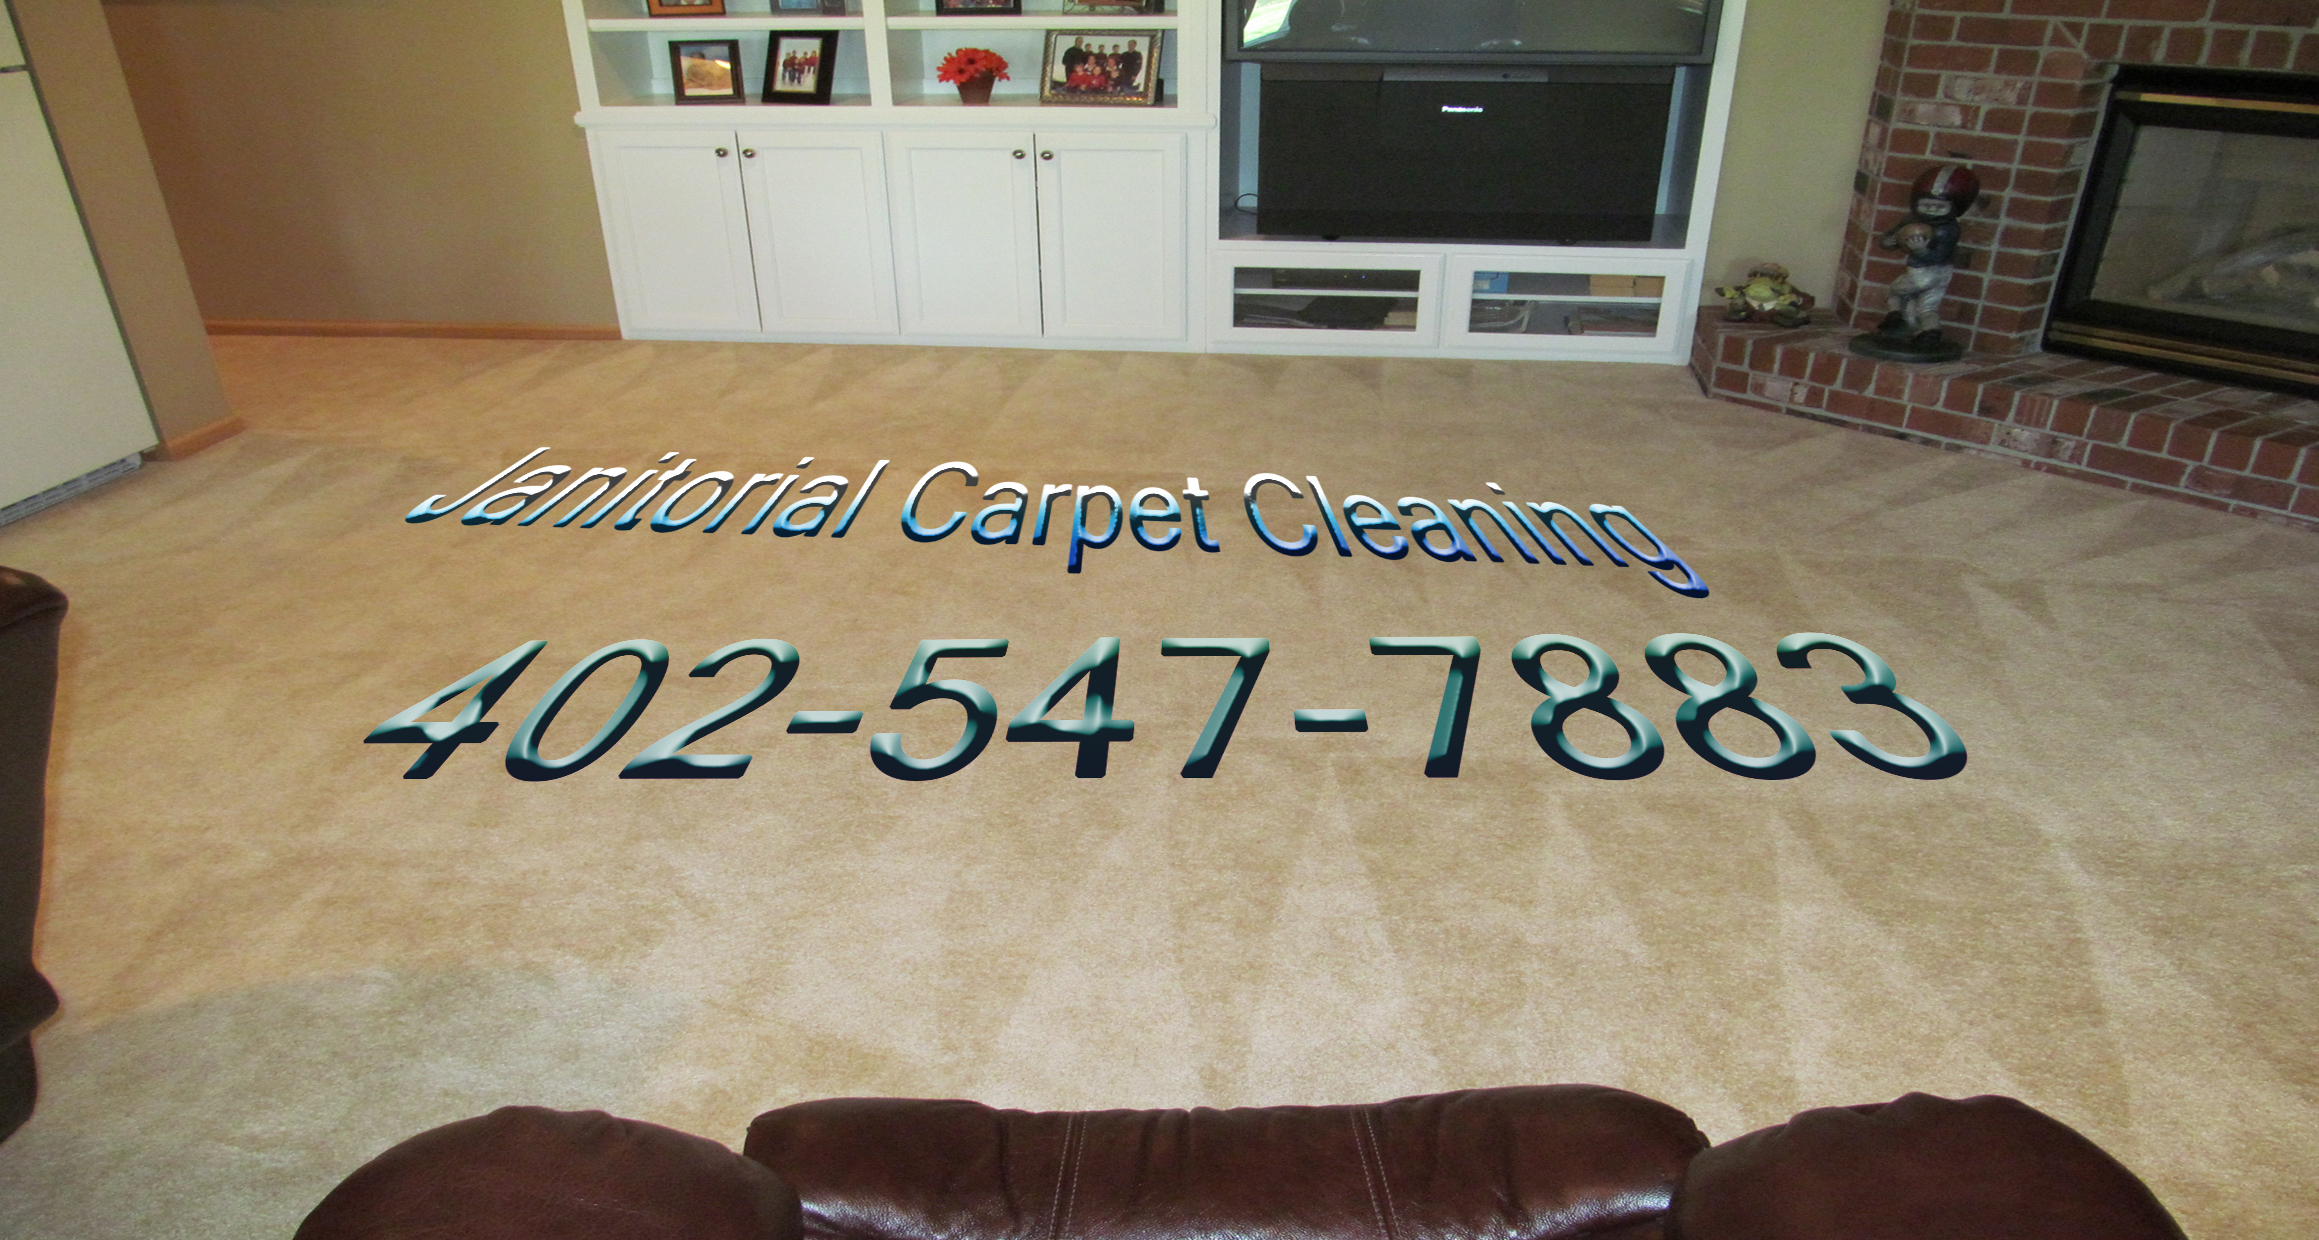 Omaha Carpet Cleaning Company Launches Mobile Auto